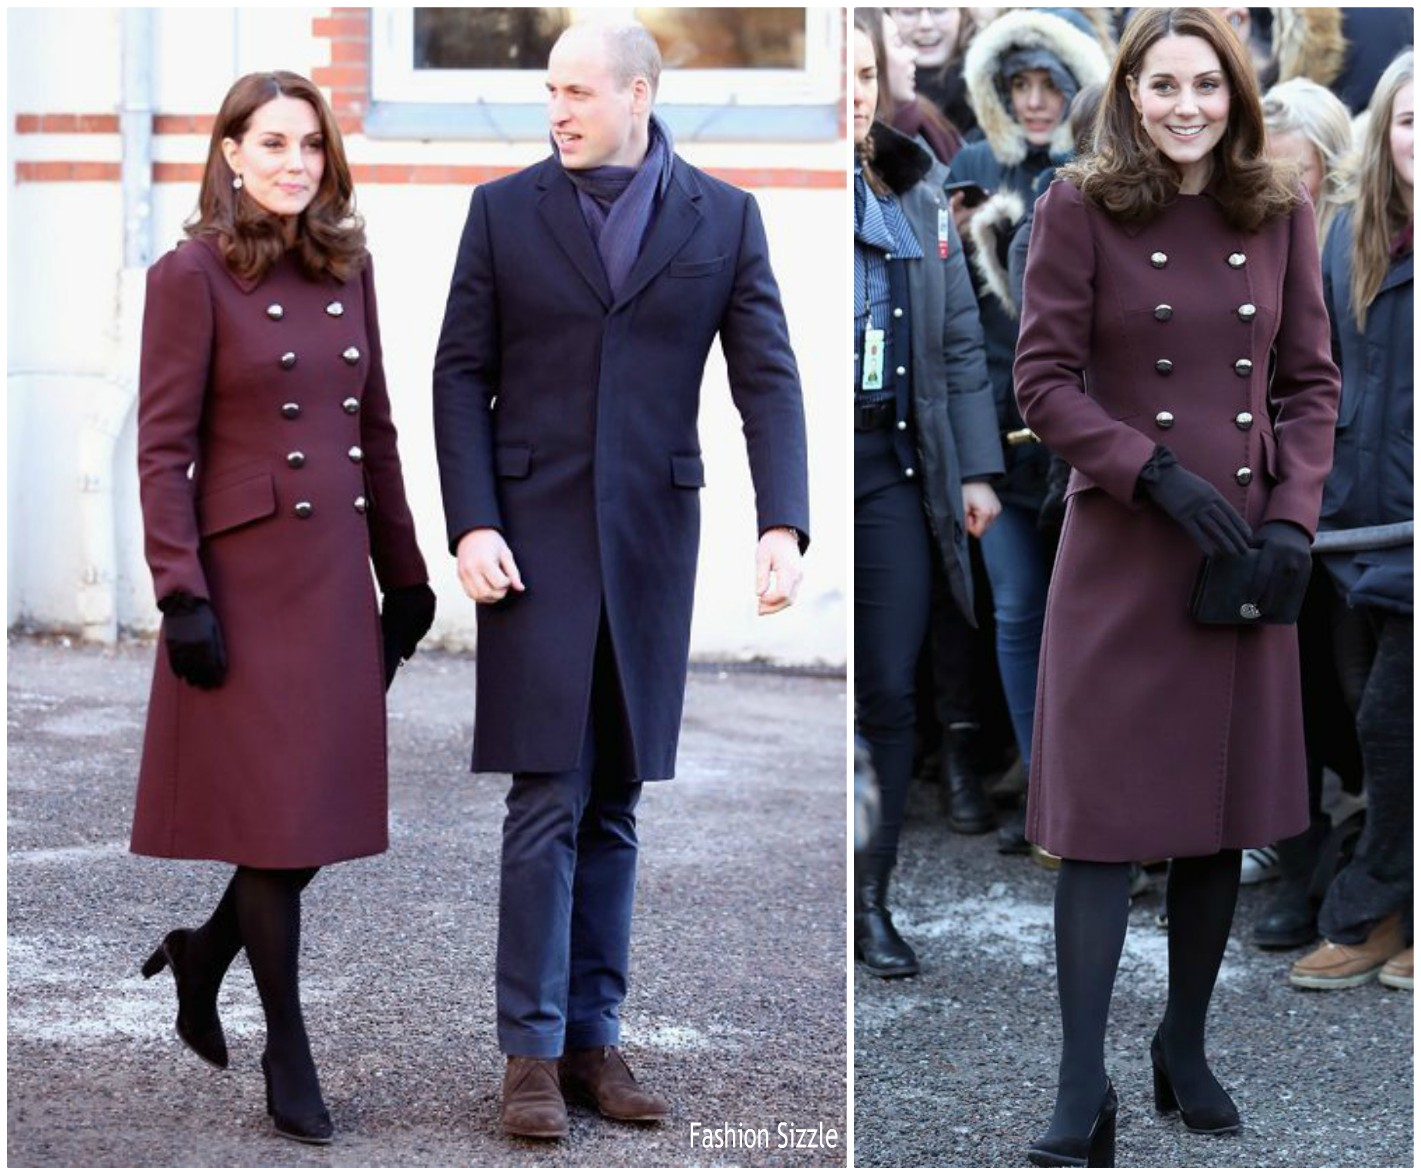 duchess-of-cambridge-in-dolce-gabbana-final-day-of-norway-tour